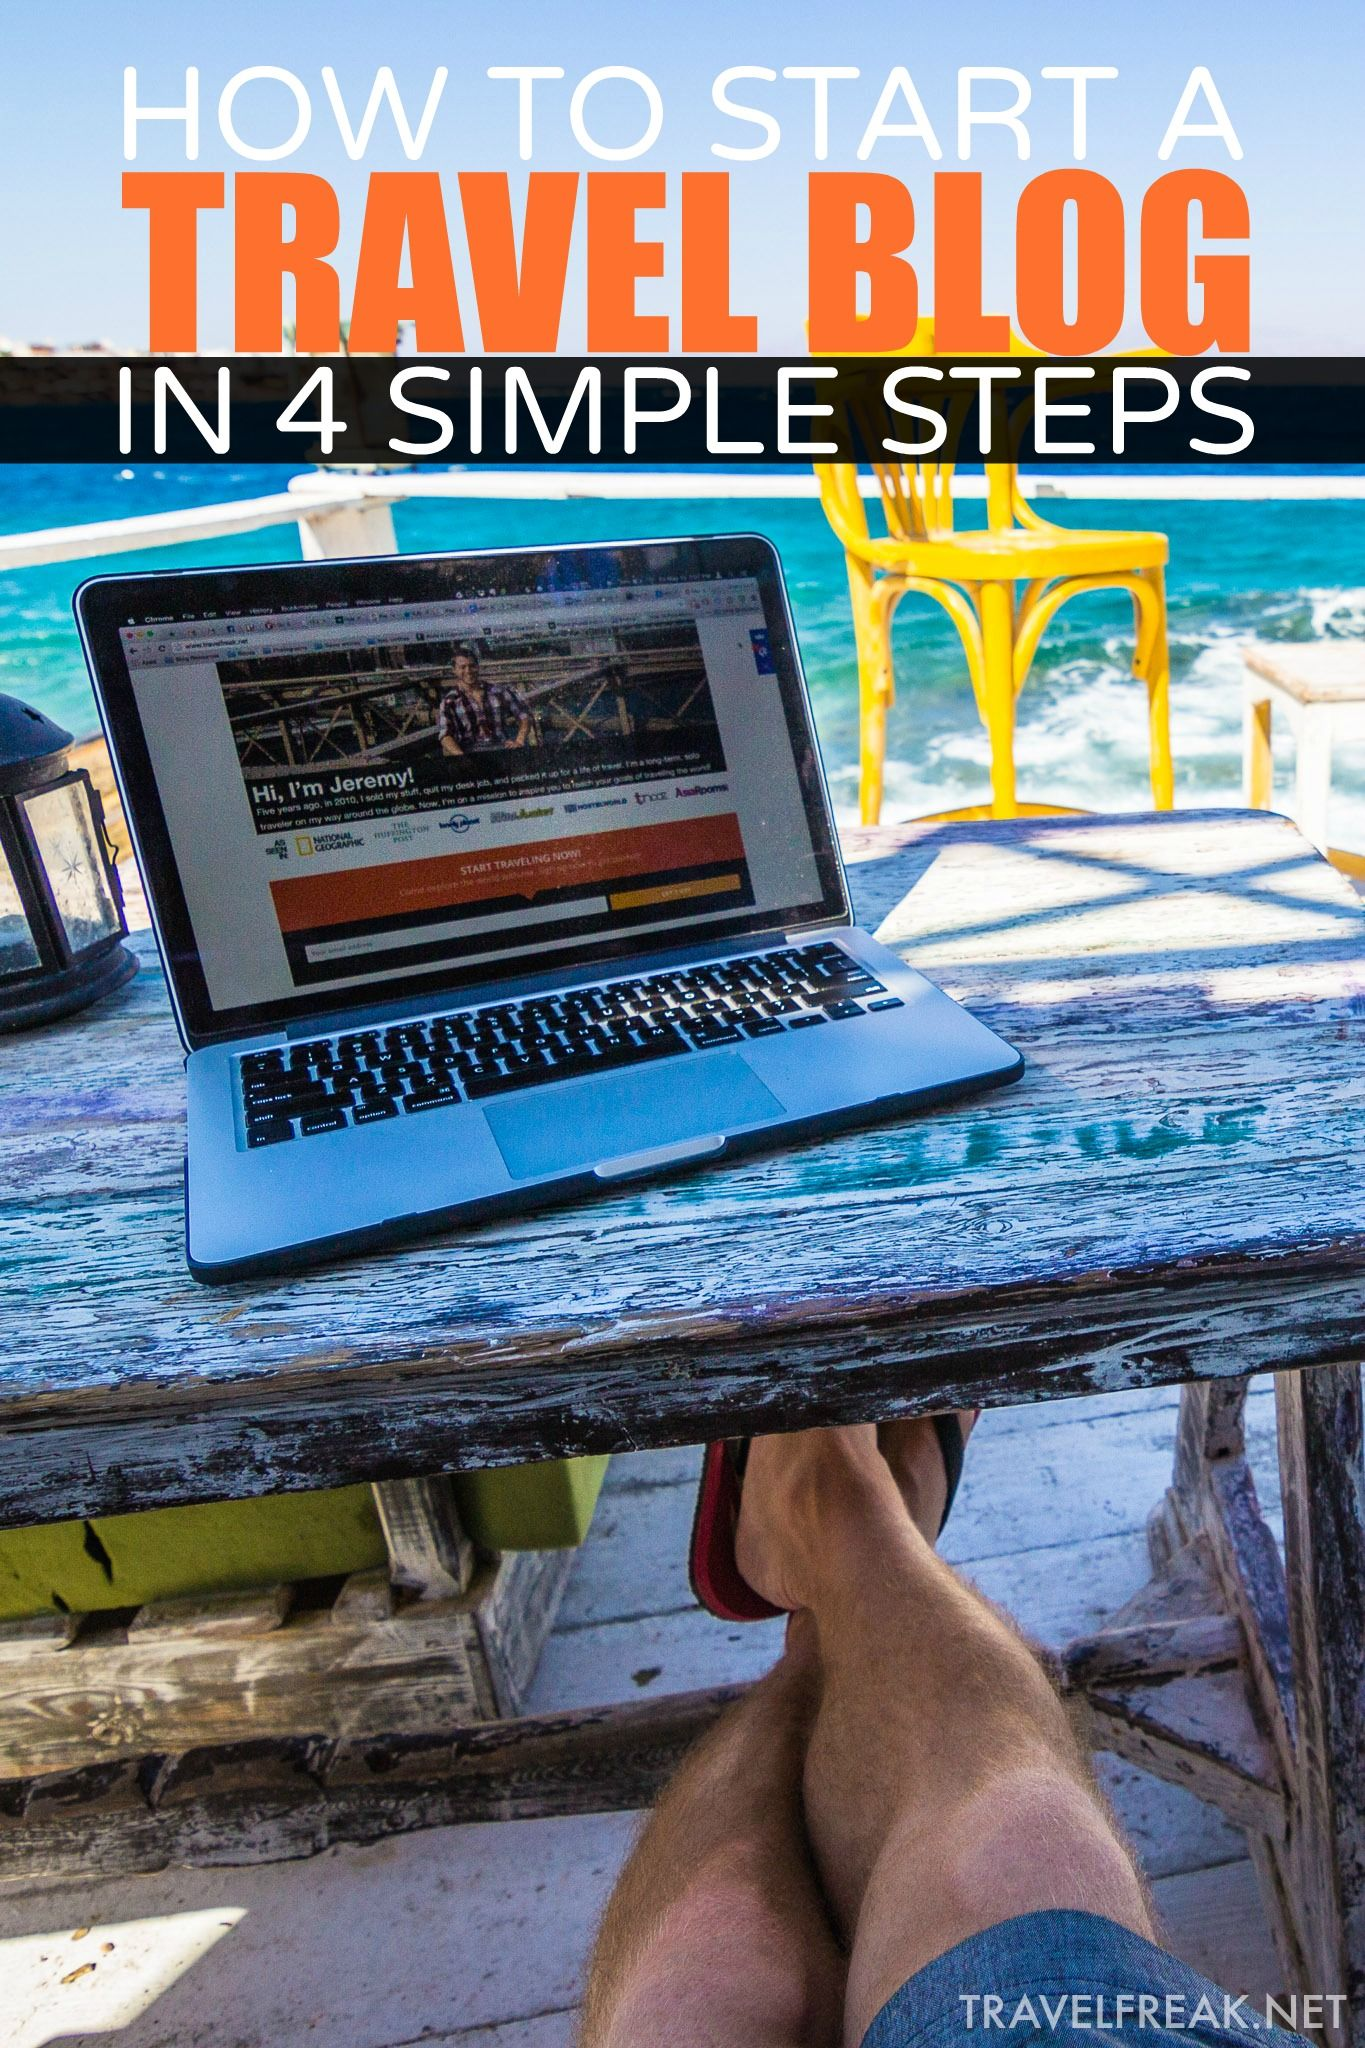 The 7 step blueprint to starting a successful travel blog ahorro y howtostartawordpresstravelbloga malvernweather Image collections